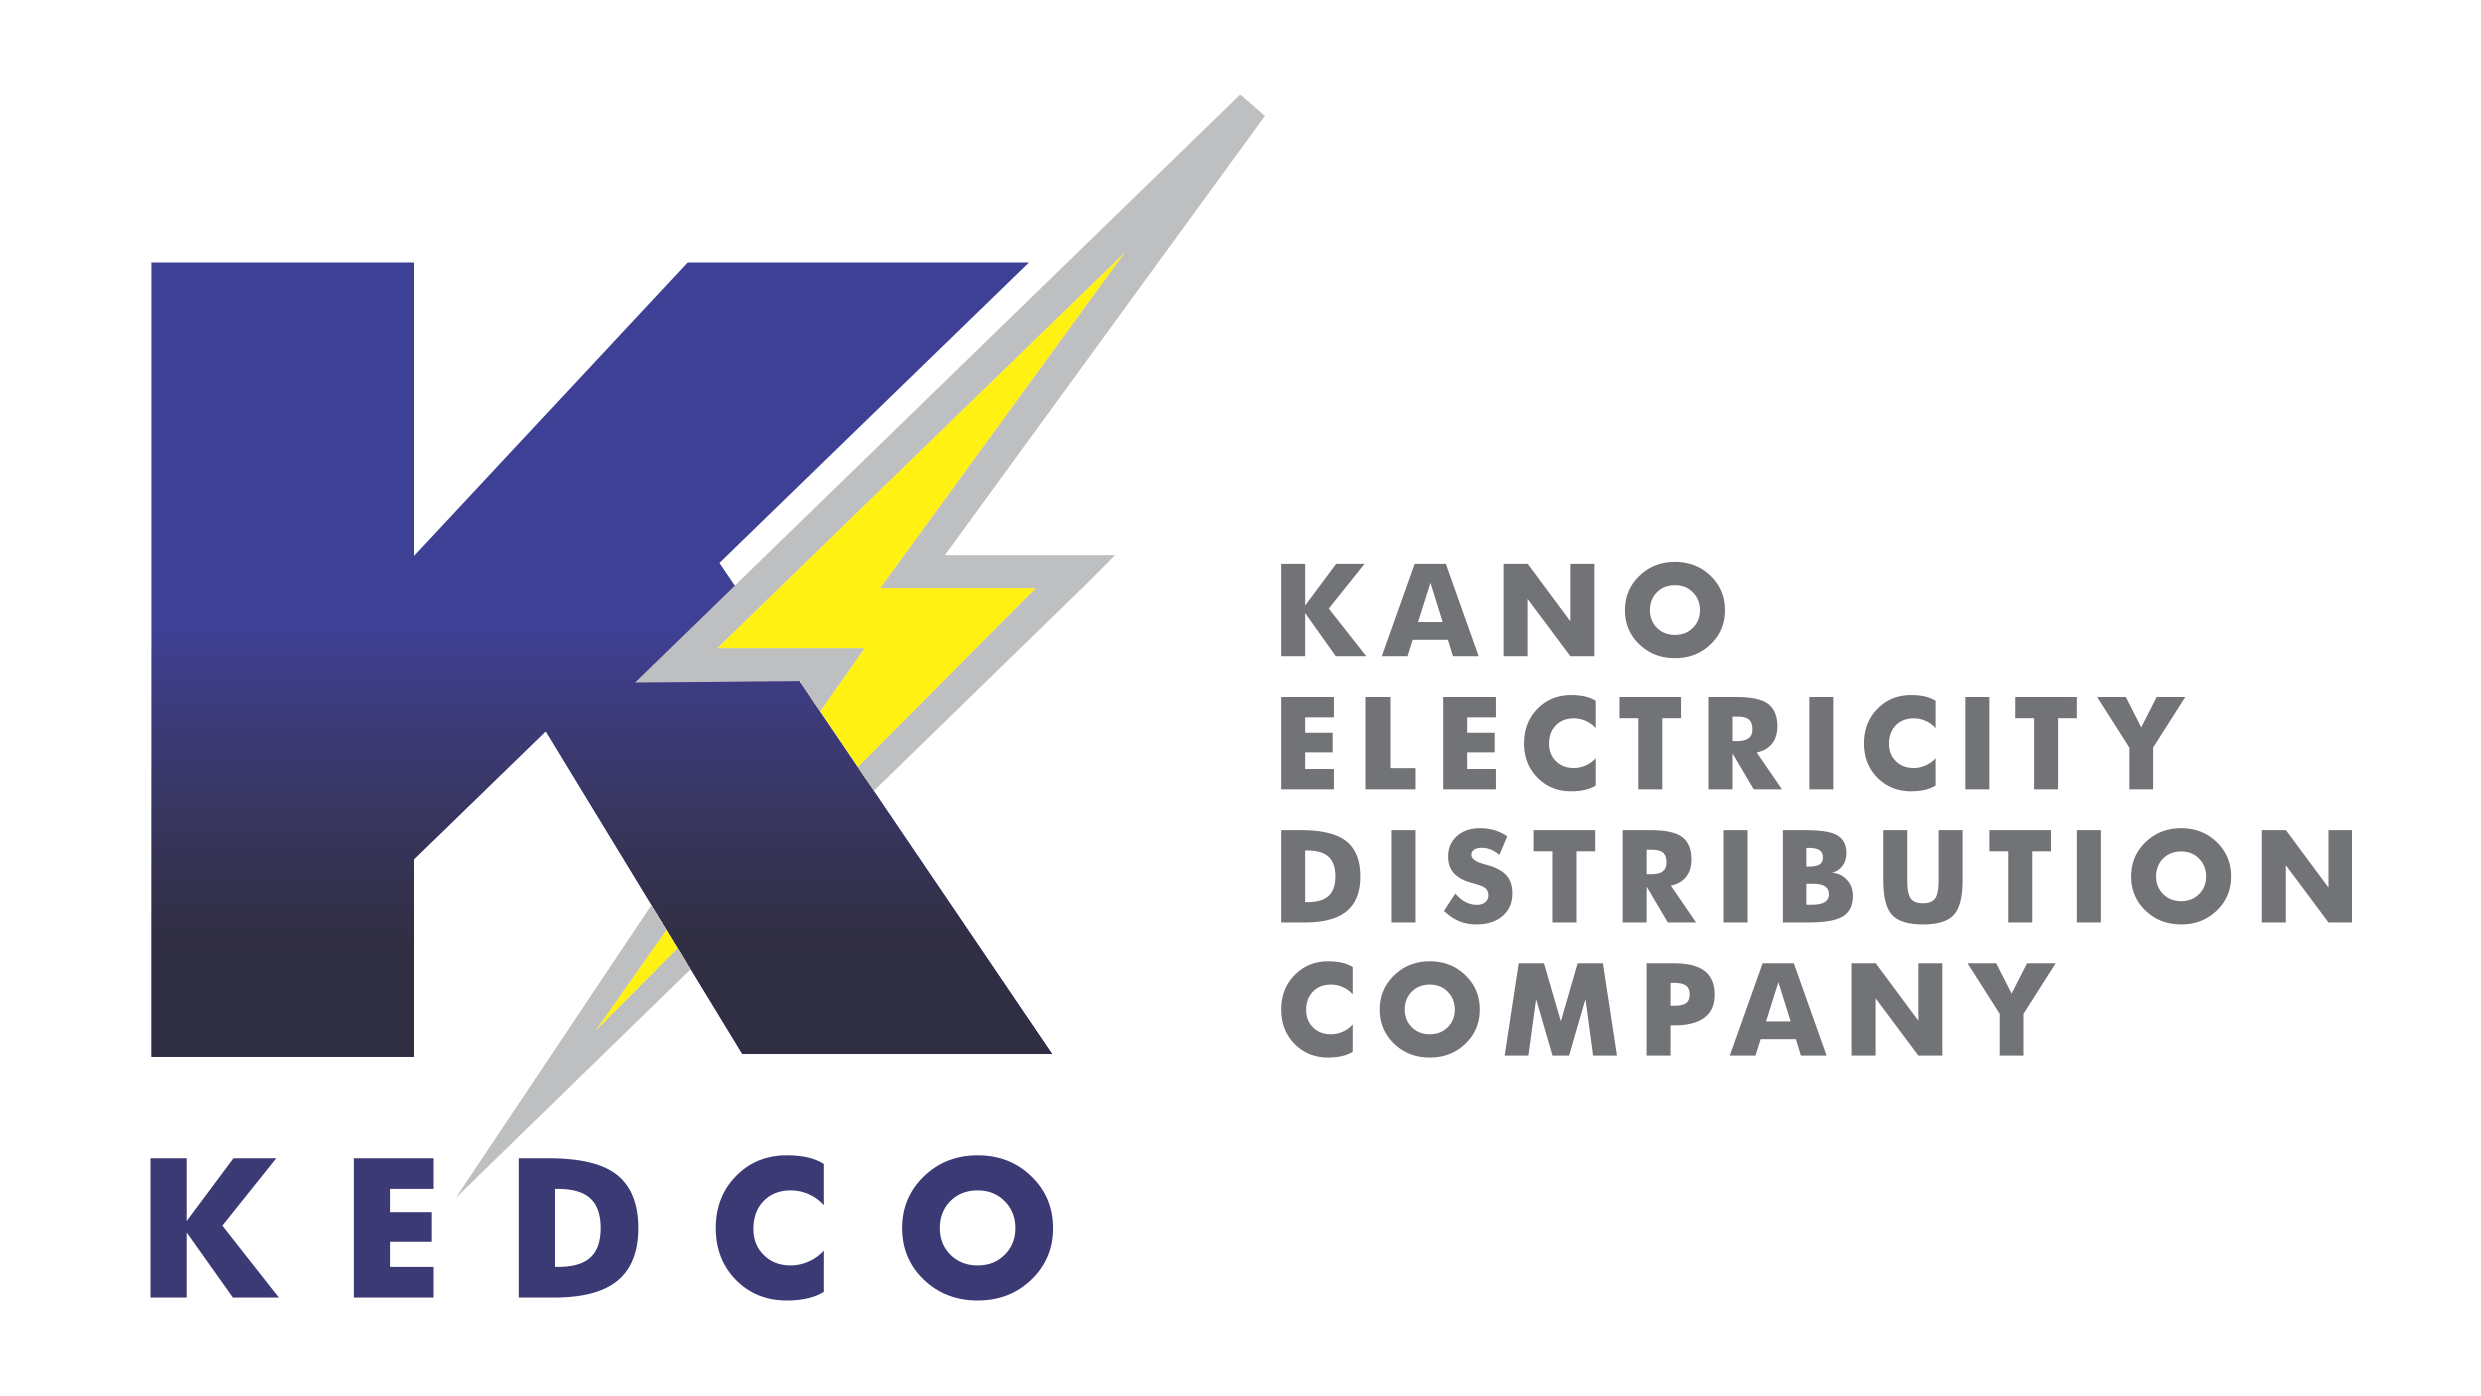 kedco - KEDCO MD pledges effective service delivery, tasks staff on commitment